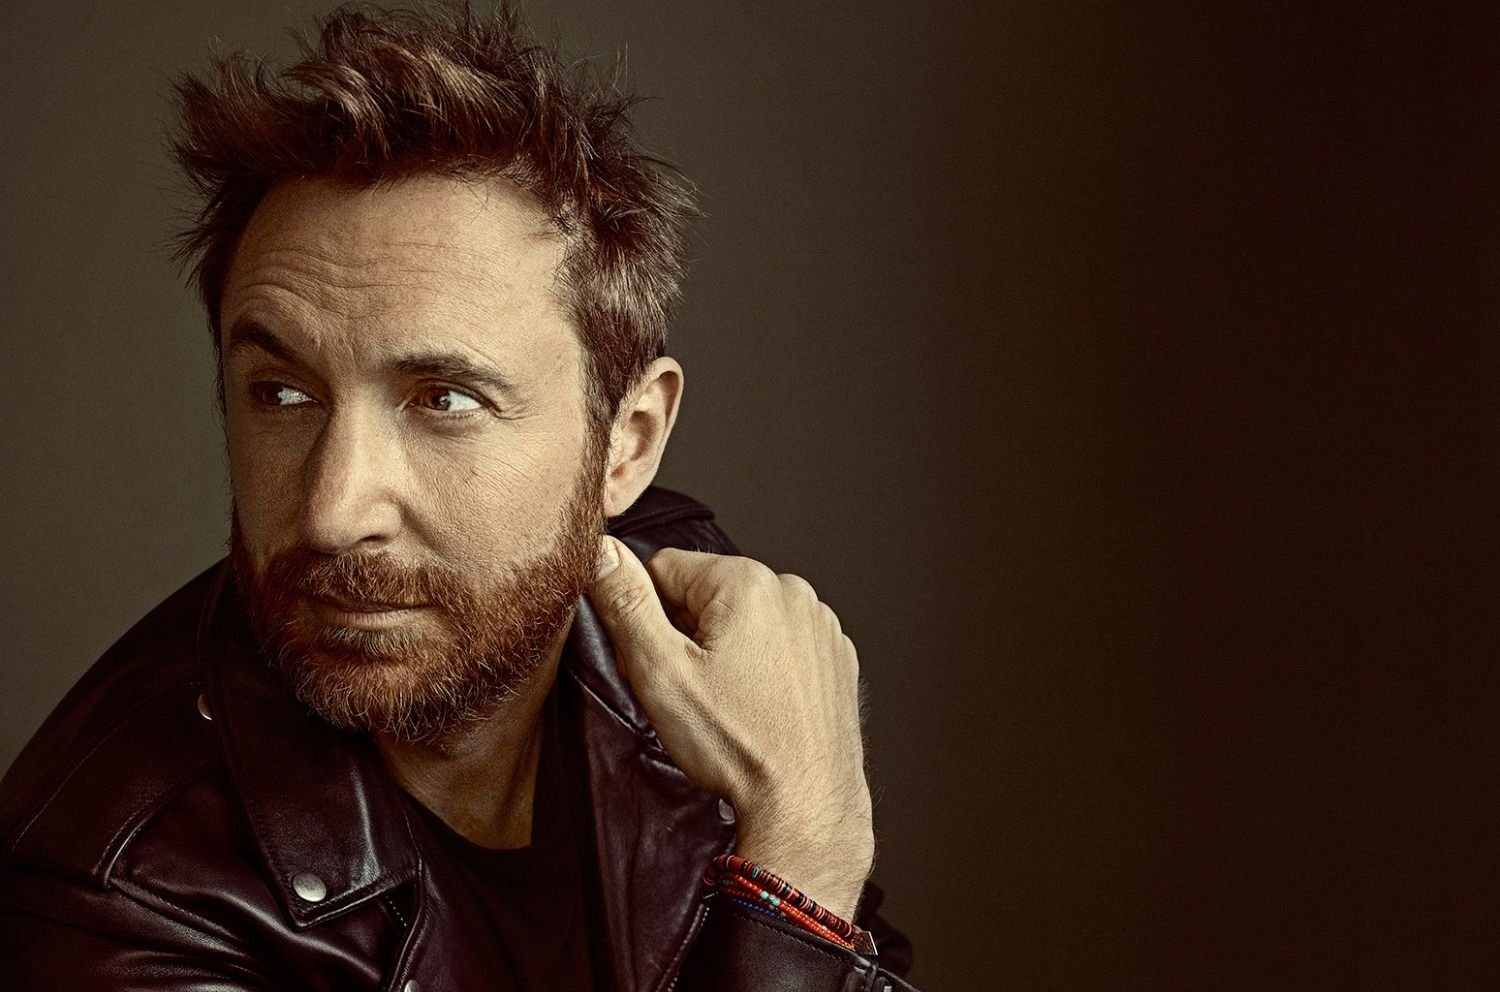 David Guetta presentó su nuevo single Stay (Dont Go Away)